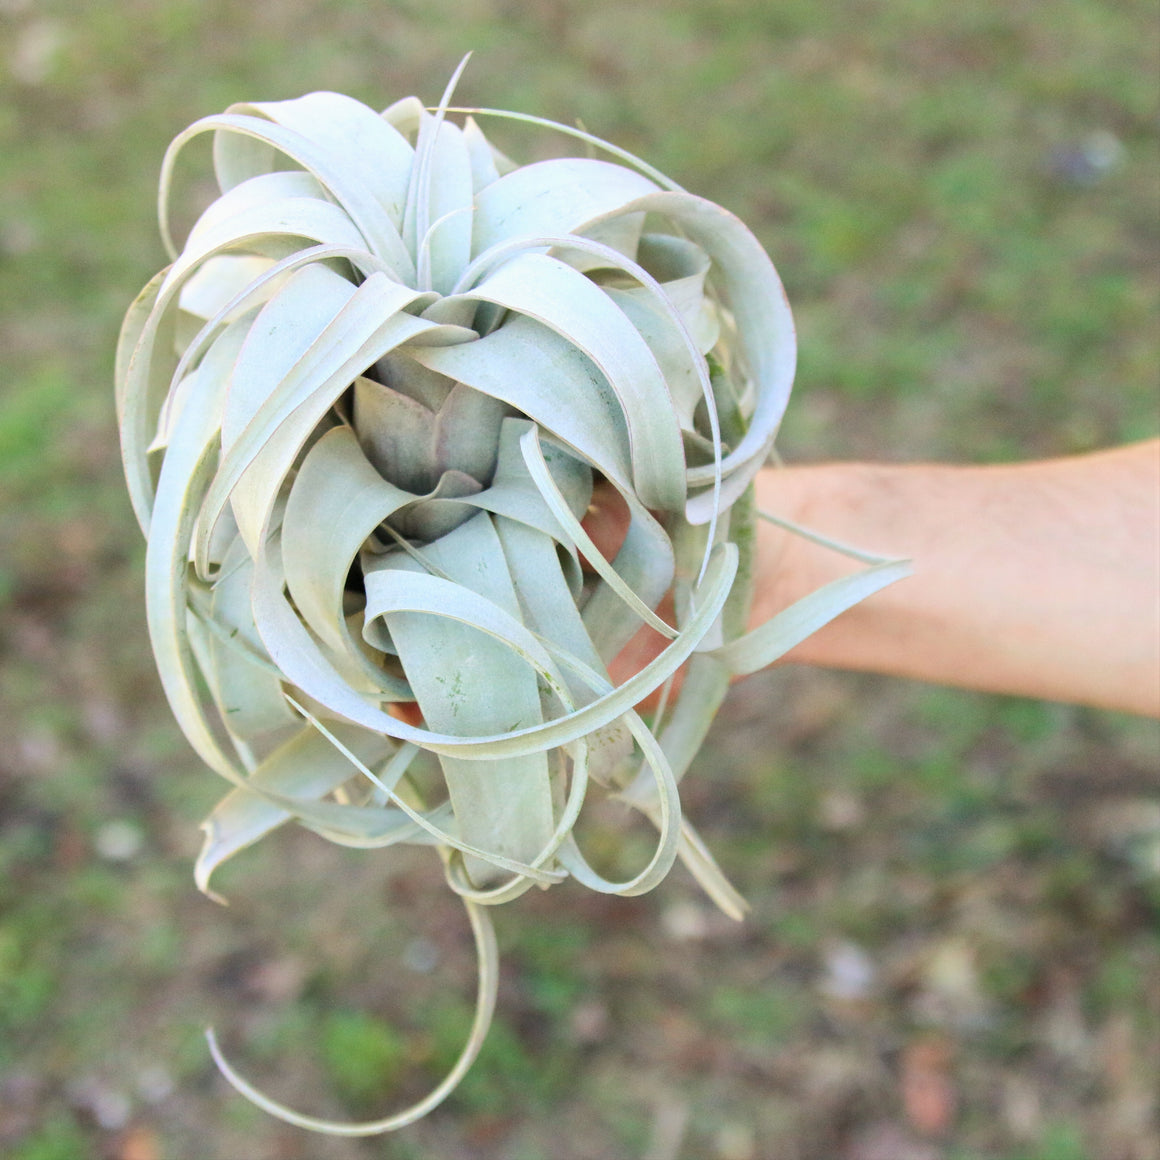 Wholesale Special Air Plants - Medium Tillandsia Xerographica / 5-6 Inch Plants